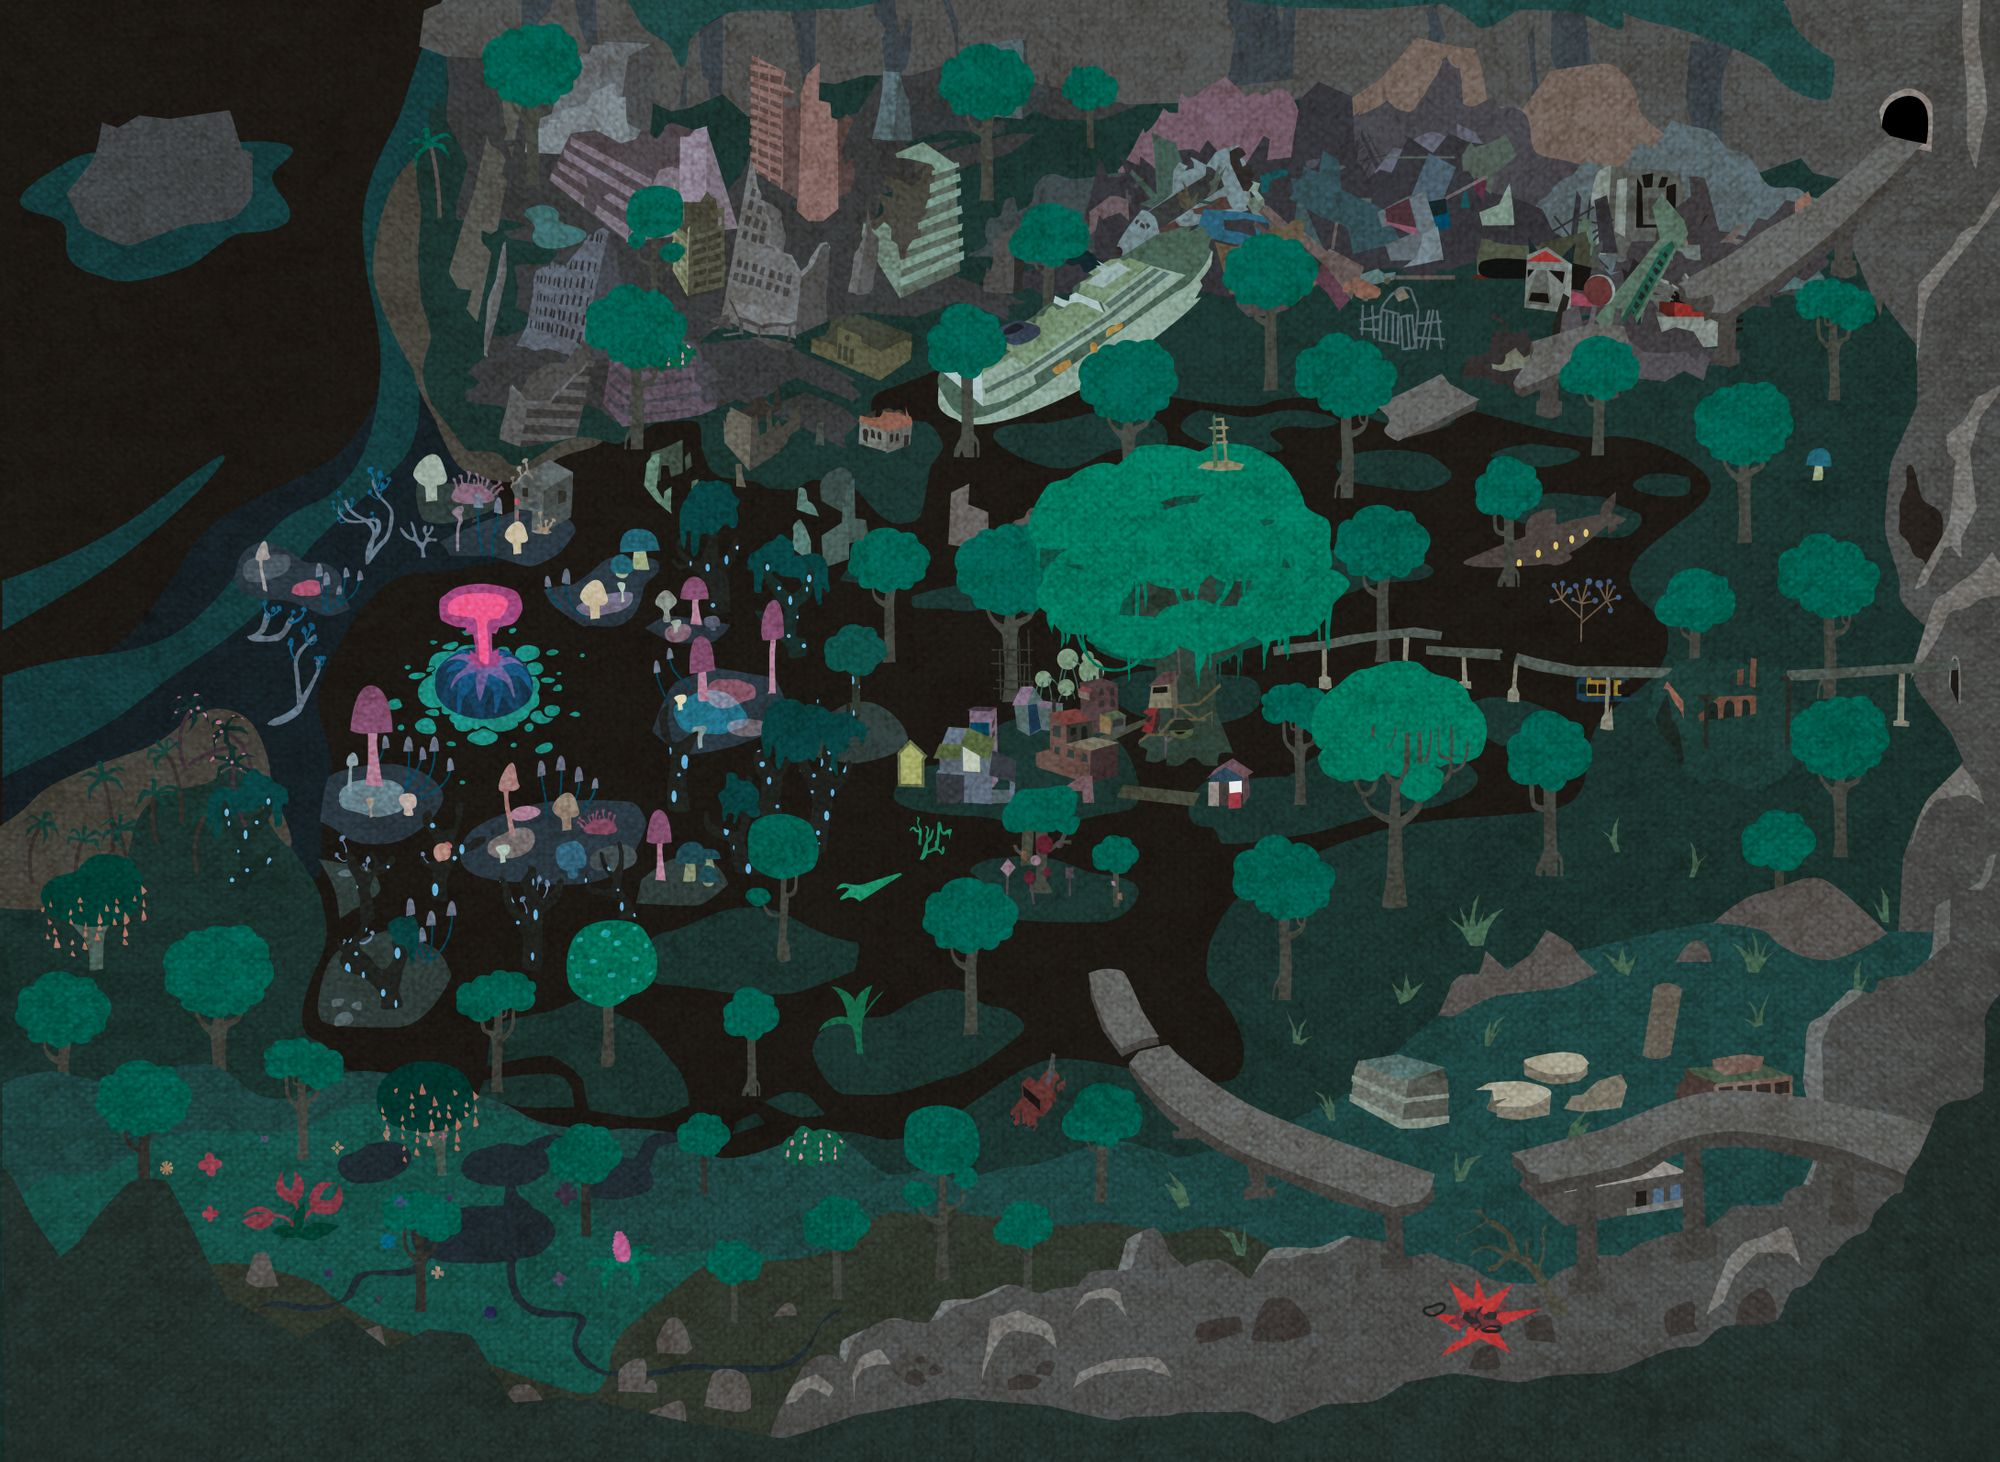 A map of the game world from around 2011. You see the giant tree in the centre, ruins, swamp, a junk yard, a mushroom forest, derelict highways and roads.